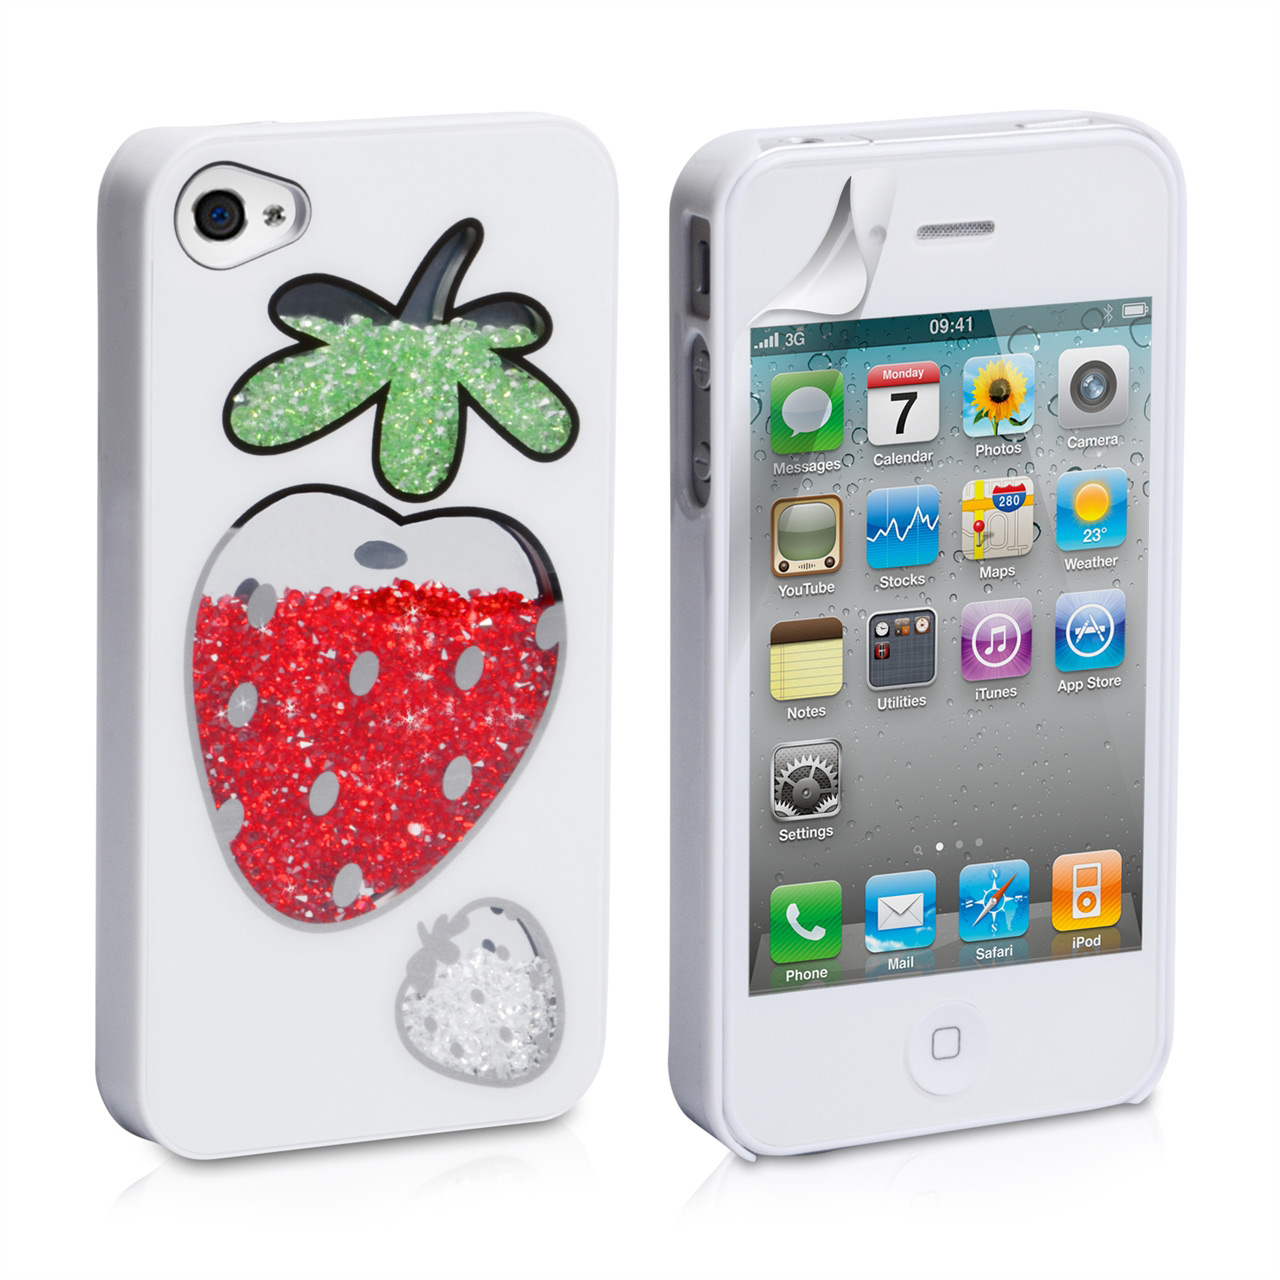 YouSave Accessories iPhone 4 / 4S Strawberry Bling Hard Case - White